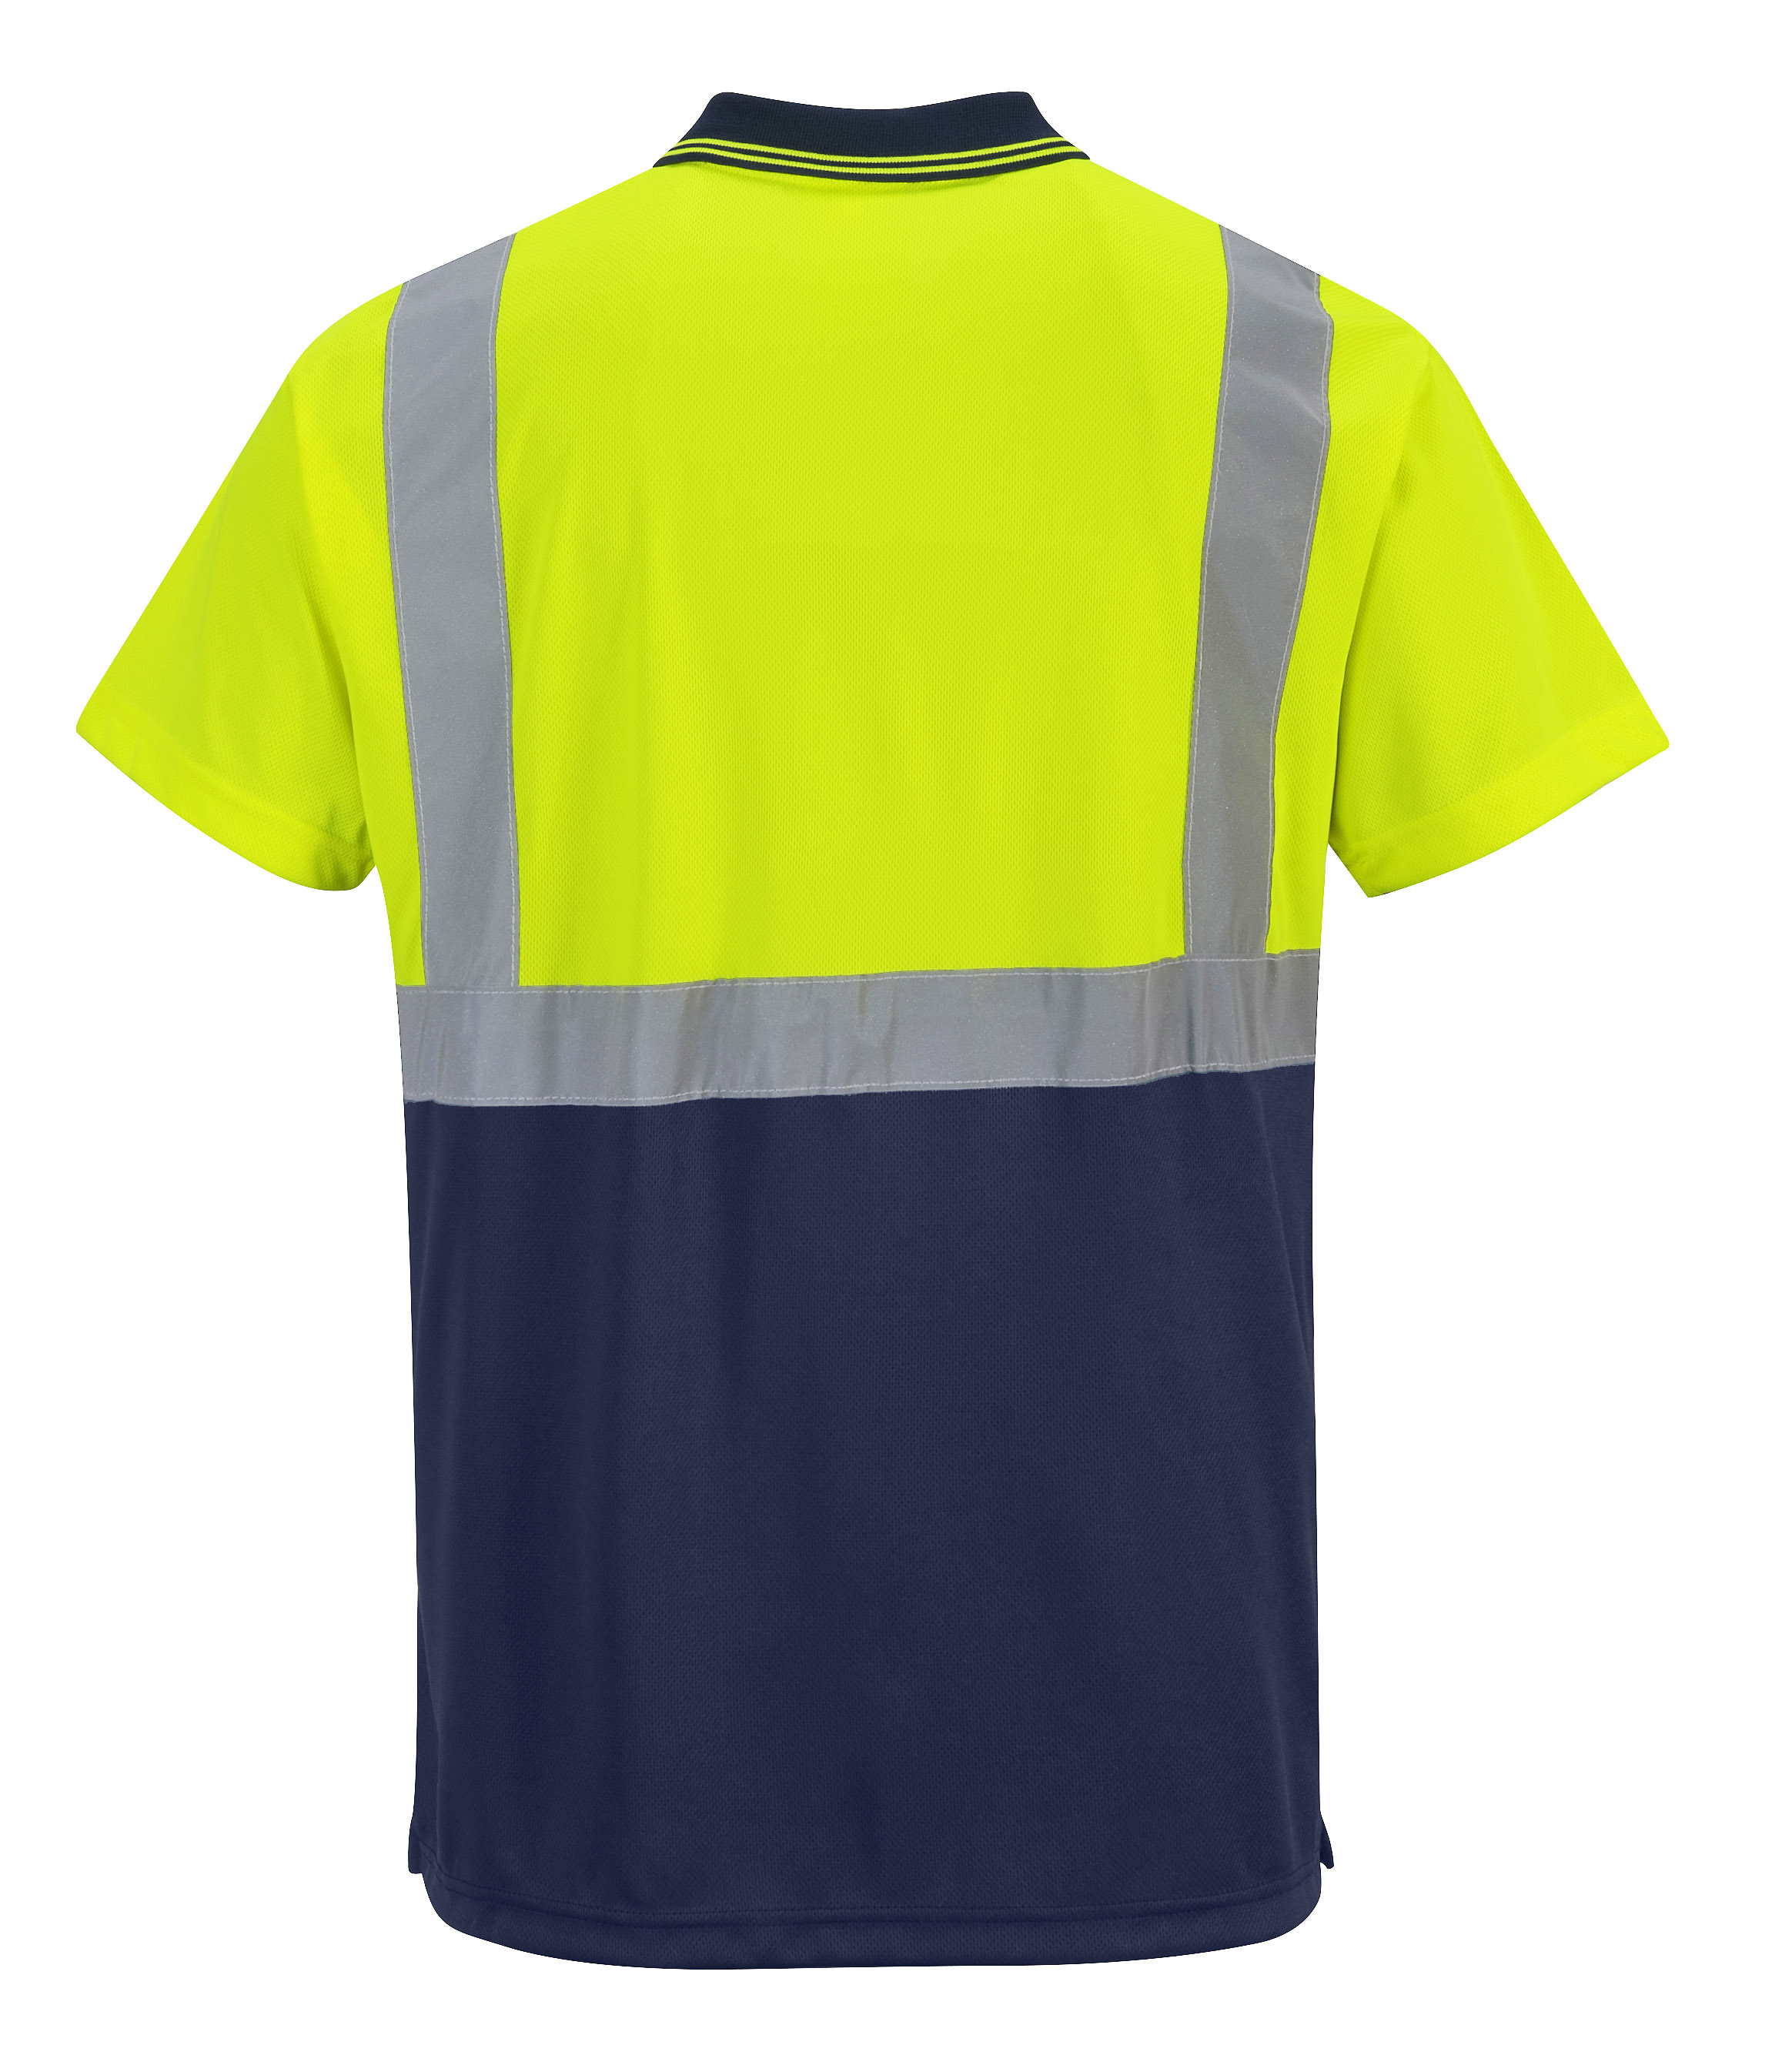 1ba74bc2d69 Two-tone High Visibility Polo - Portwest S479 — iWantWorkwear